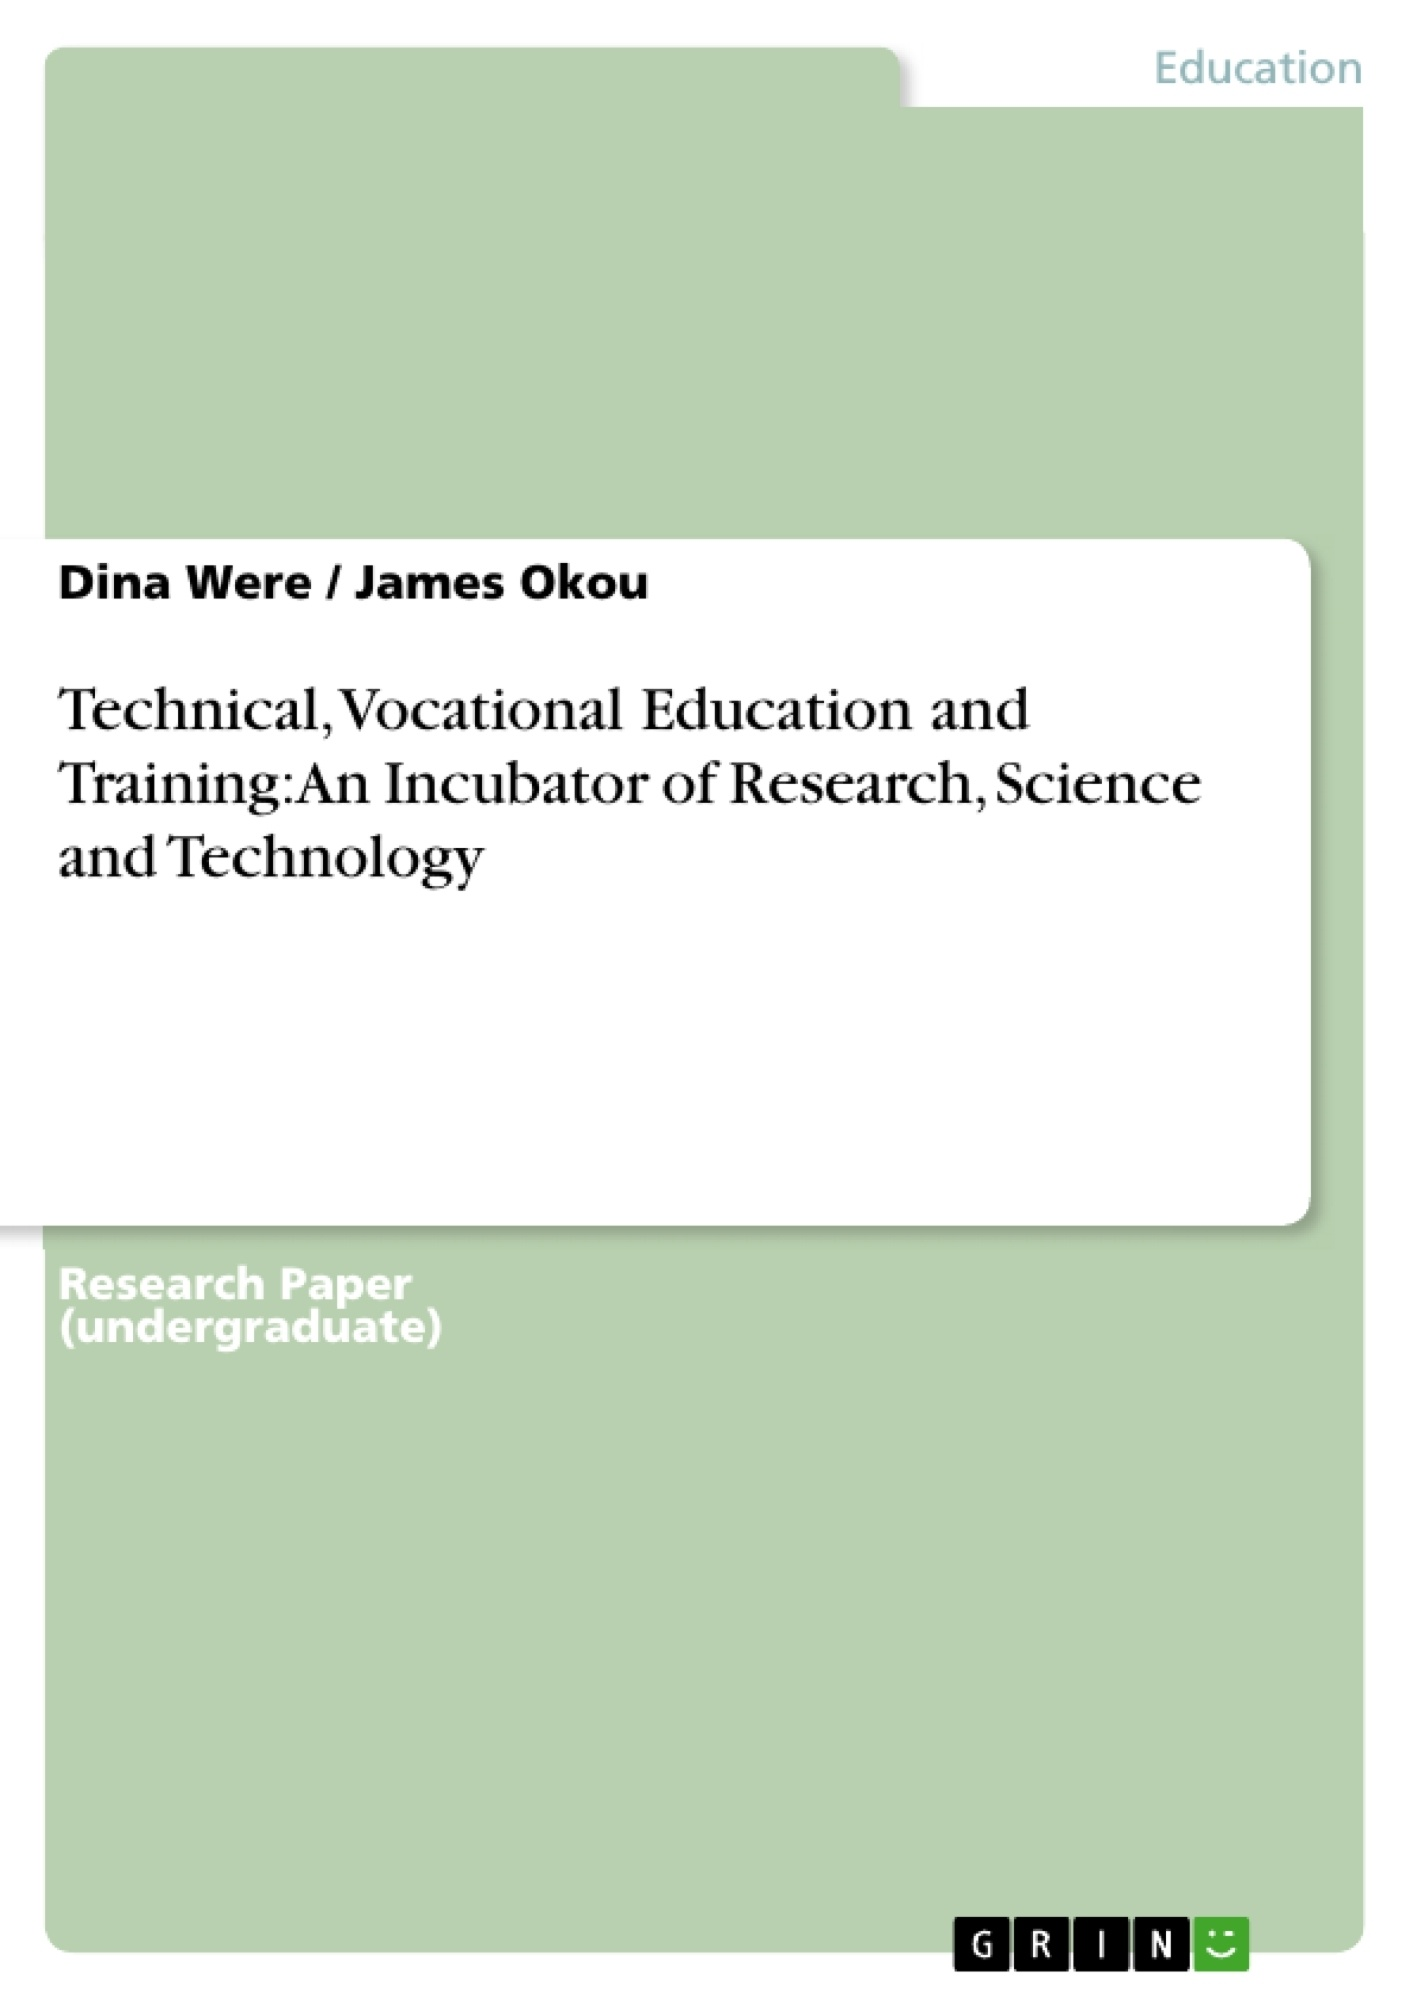 Title: Technical, Vocational Education and Training: An Incubator of Research, Science and Technology